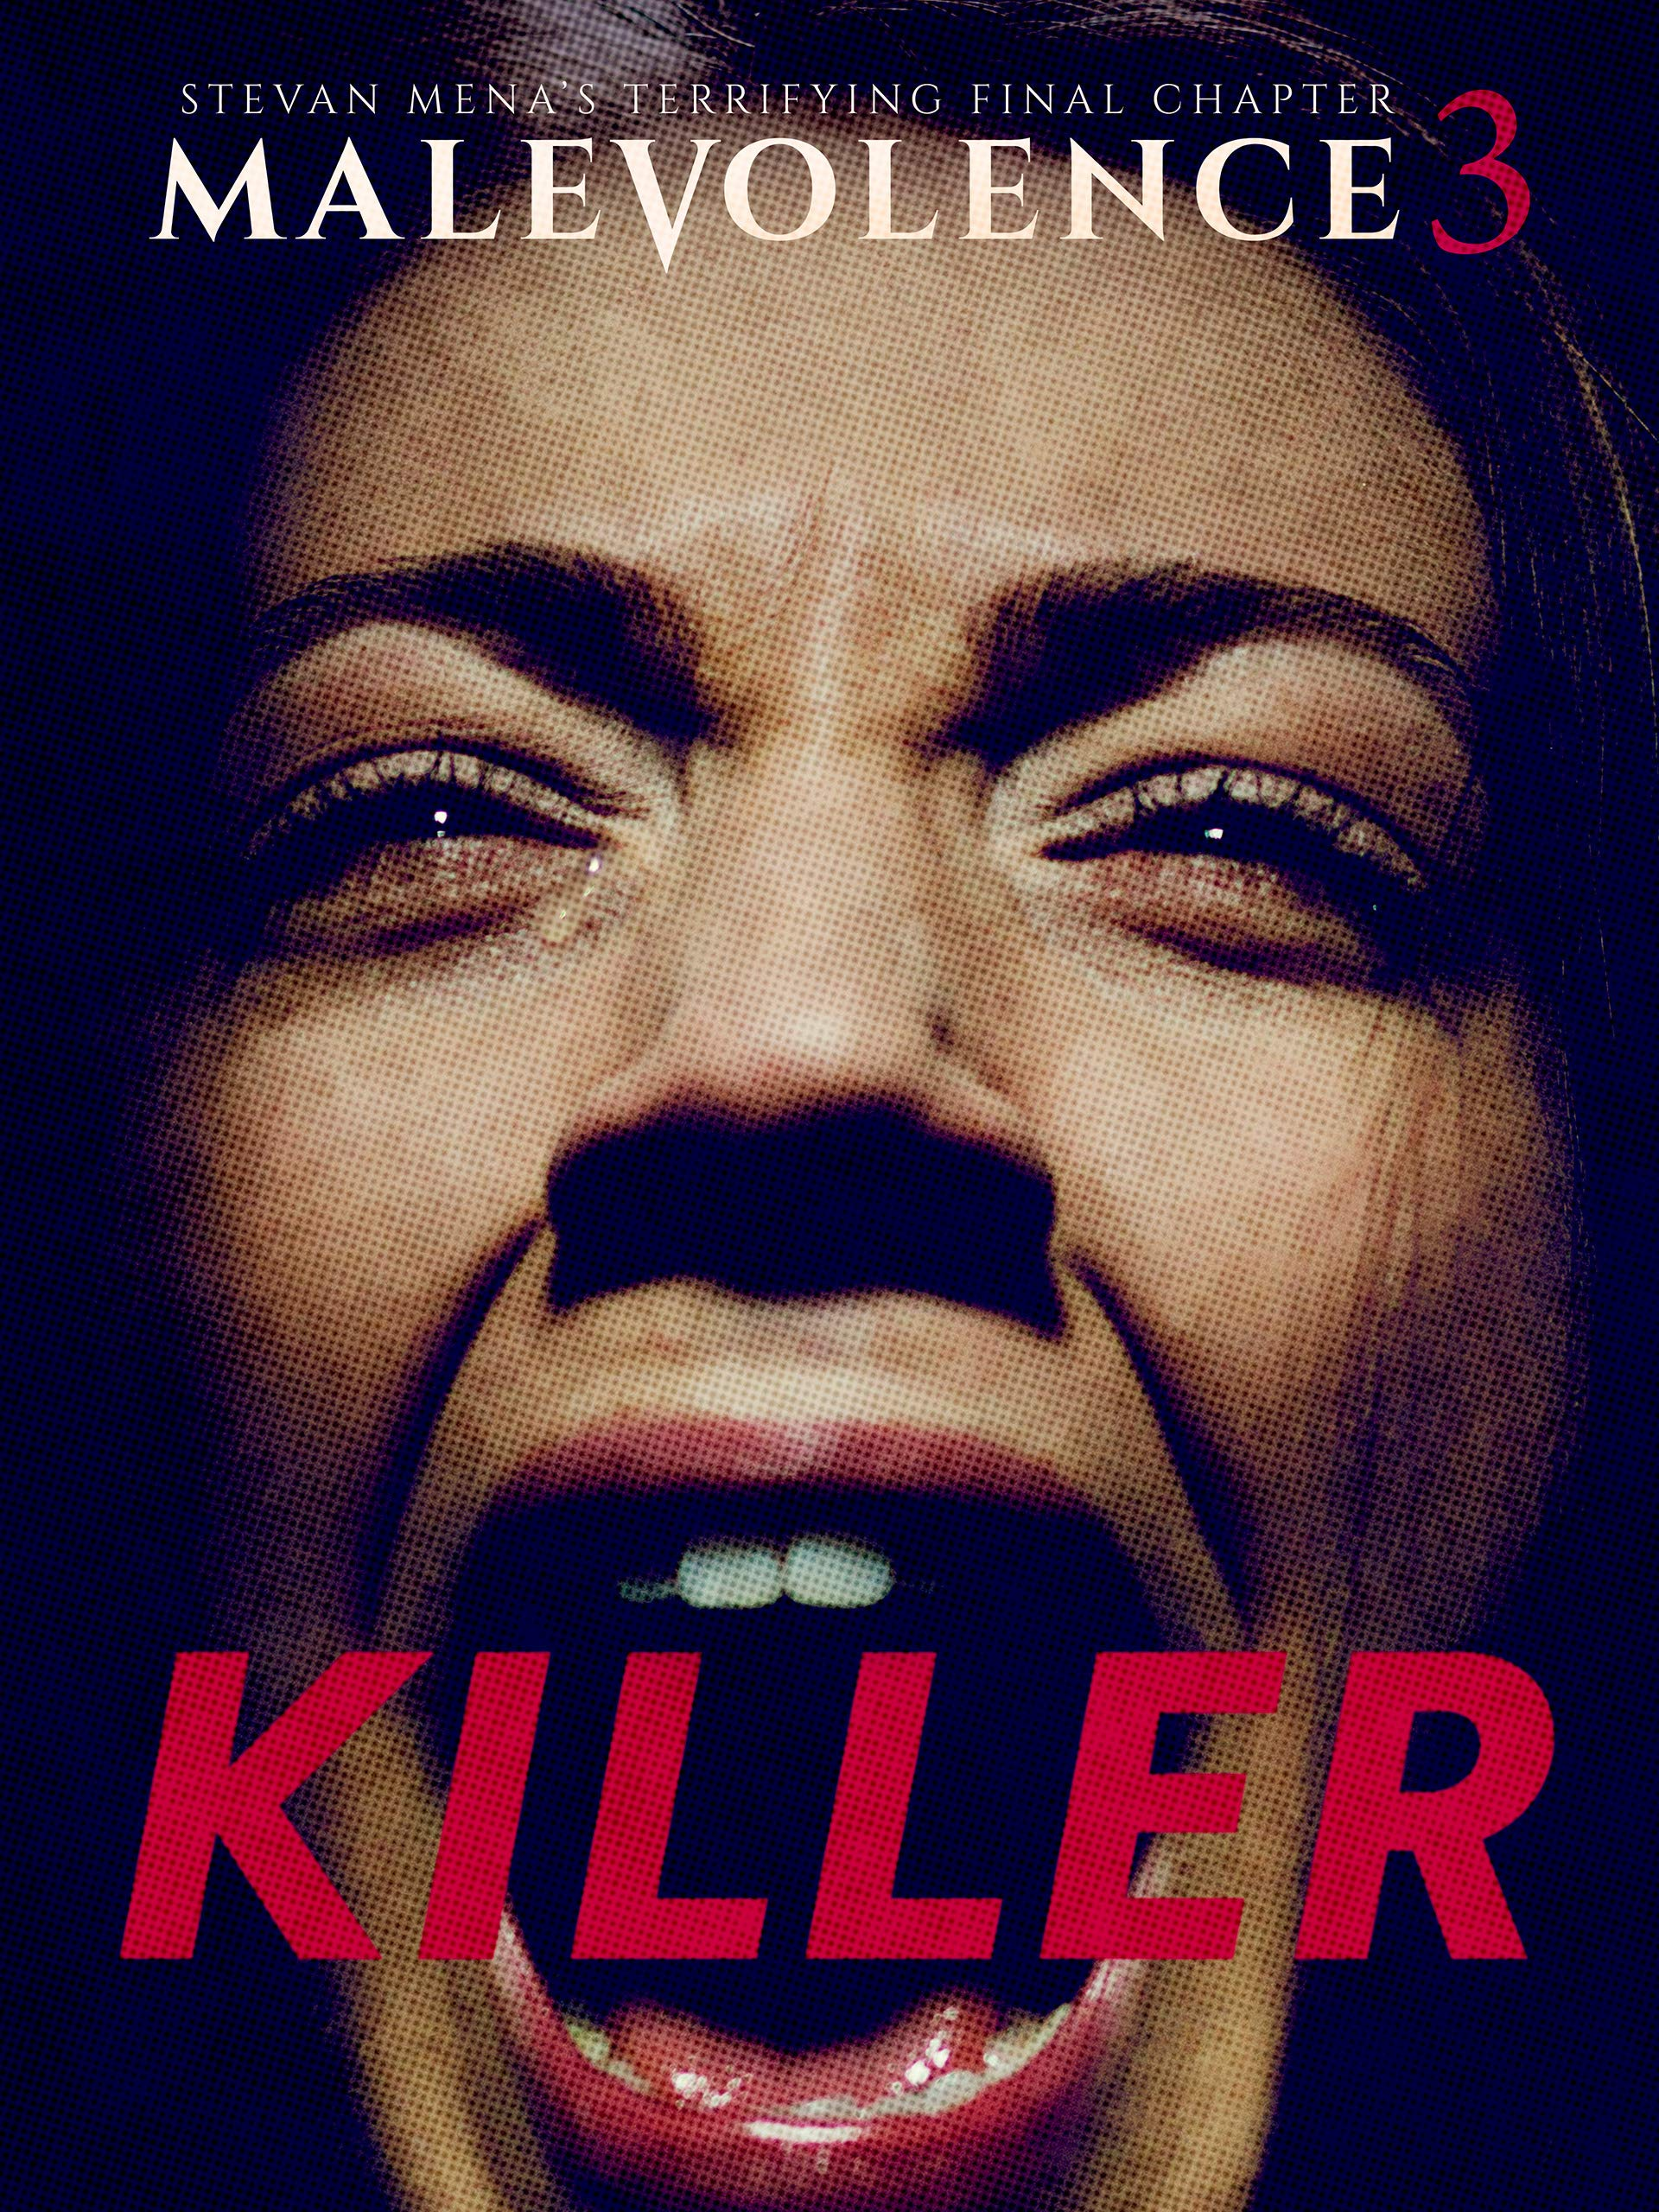 Malevolence 3: Killer on Amazon Prime Instant Video UK